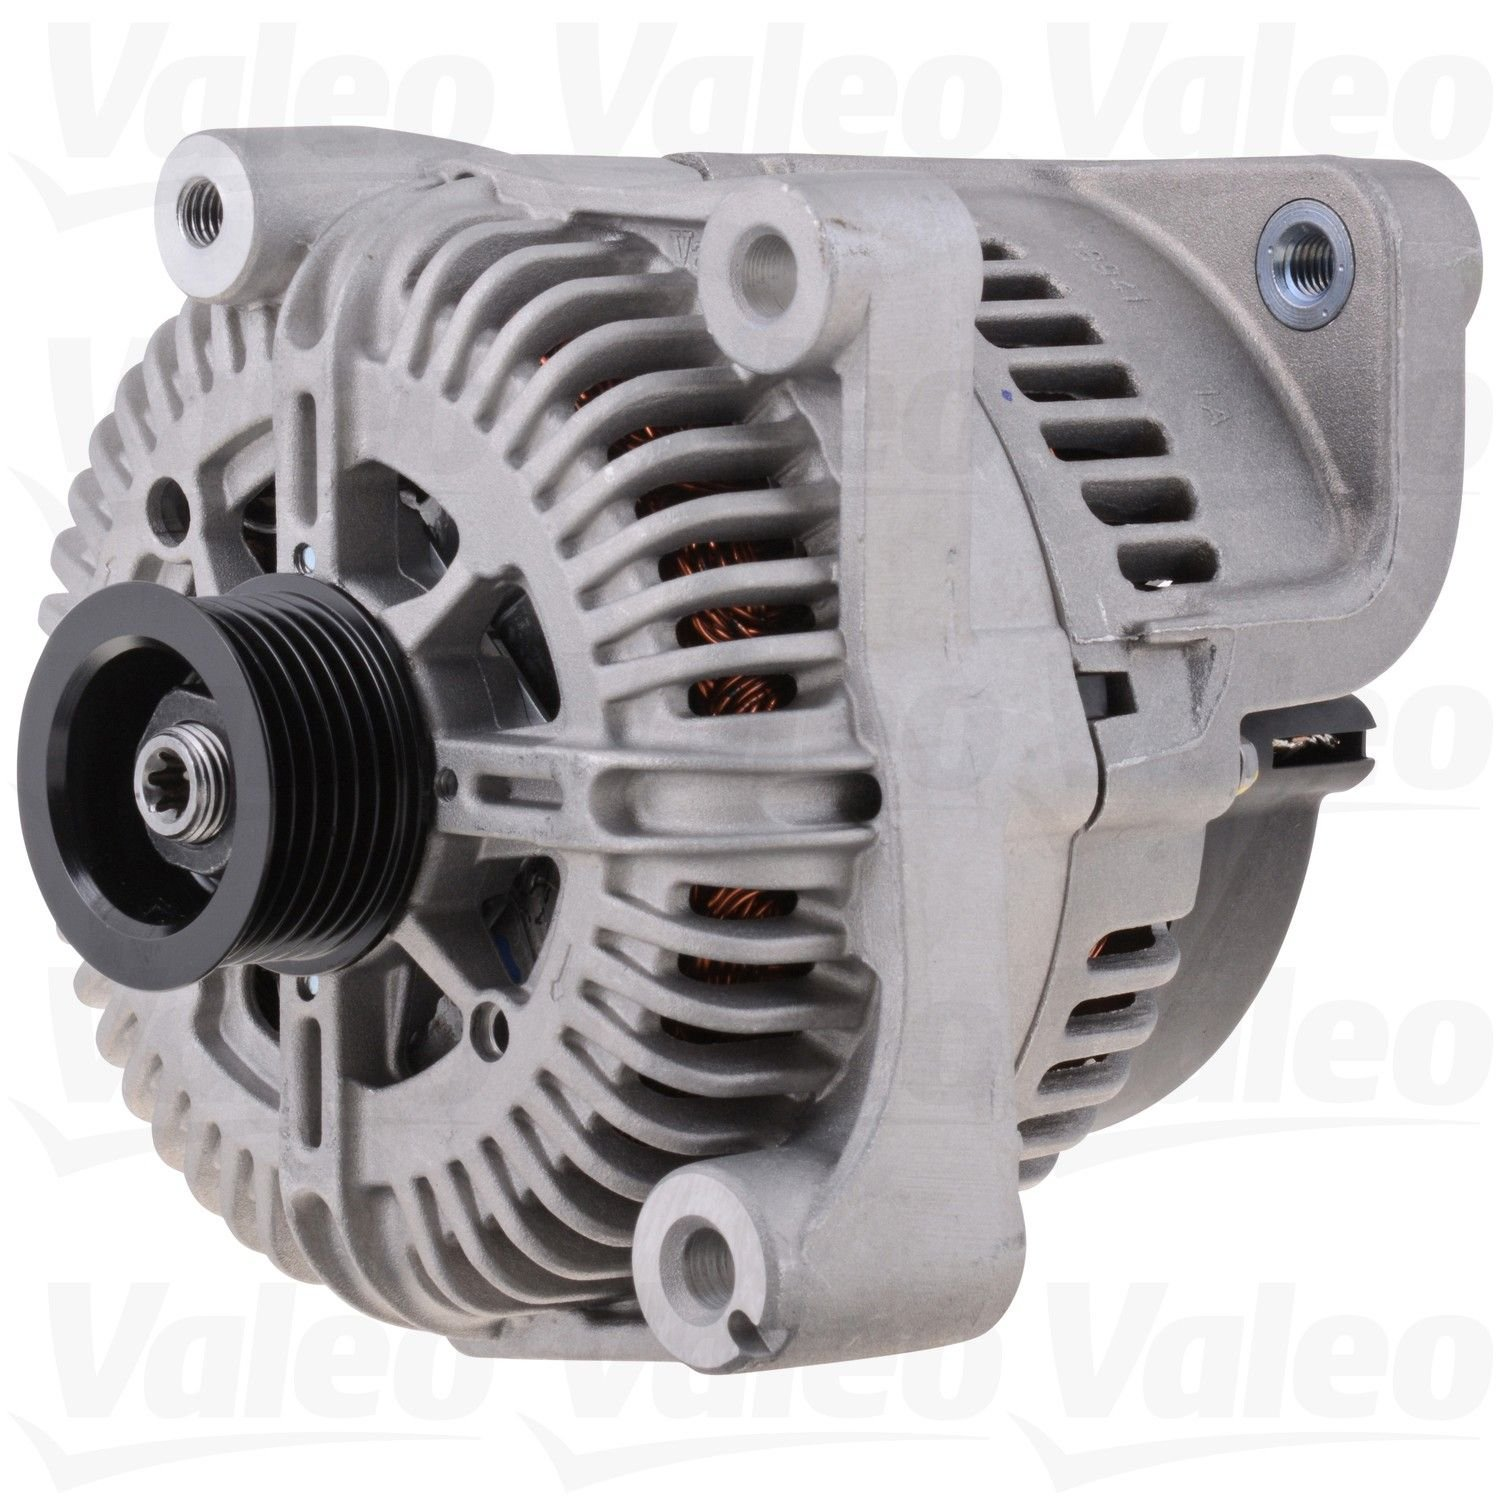 BMW 750Li Alternator Replacement (BBB Industries, Bosch, MPA